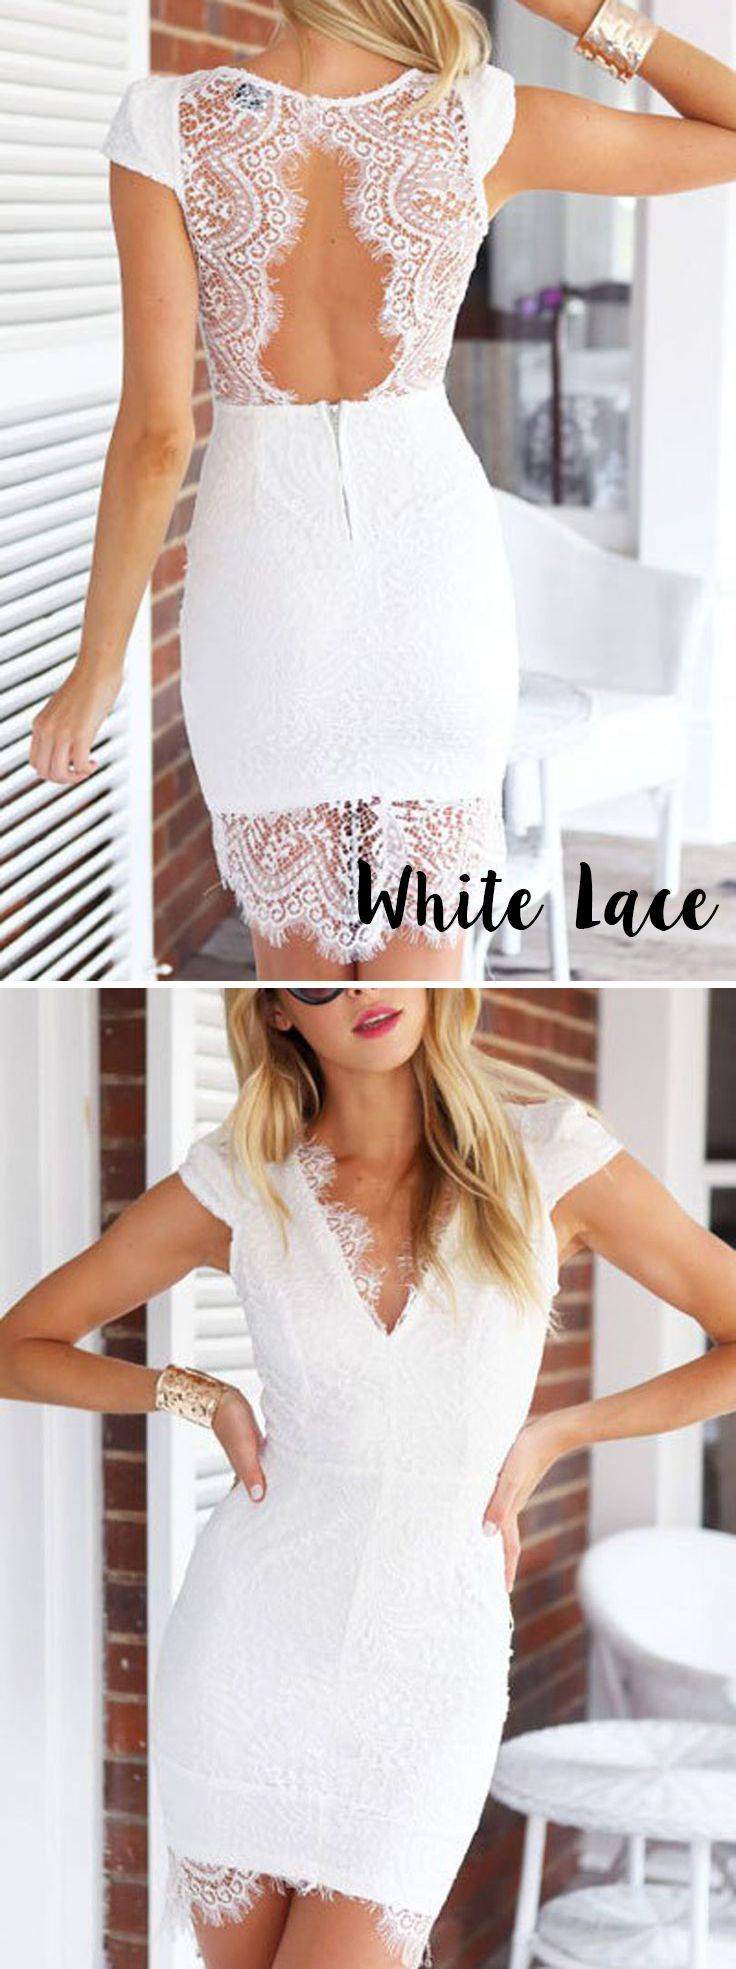 stunning in white lace! Little White Dress